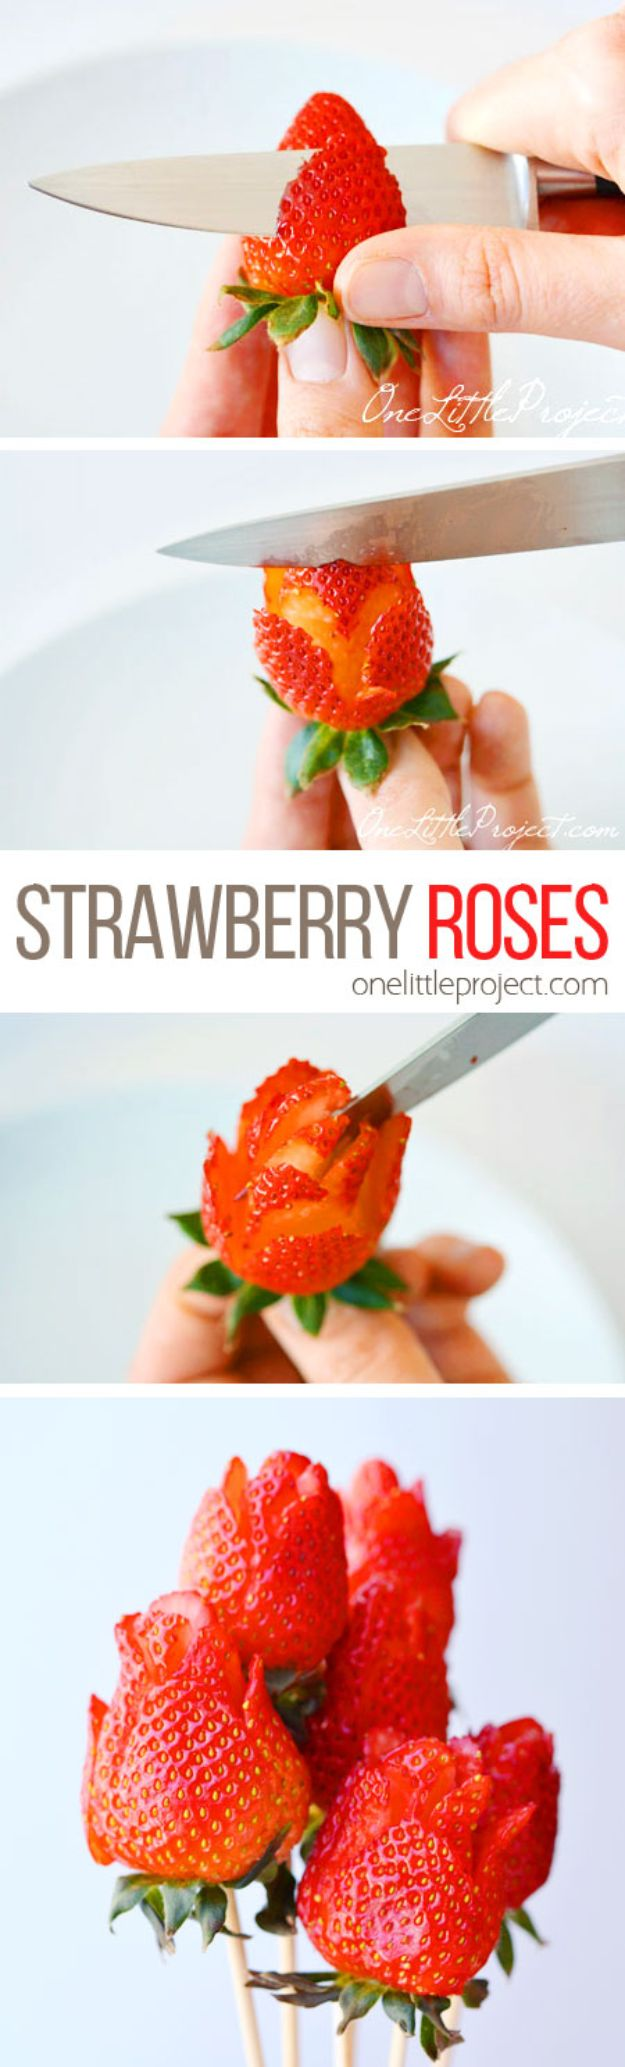 Best Mothers Day Ideas - Strawberry Rose - Easy and Cute DIY Projects to Make for Mom - Cool Gifts and Homemade Cards, Gift in A Jar Ideas - Cheap Things You Can Make for Your Mother http://diyjoy.com/diy-mothers-day-ideas